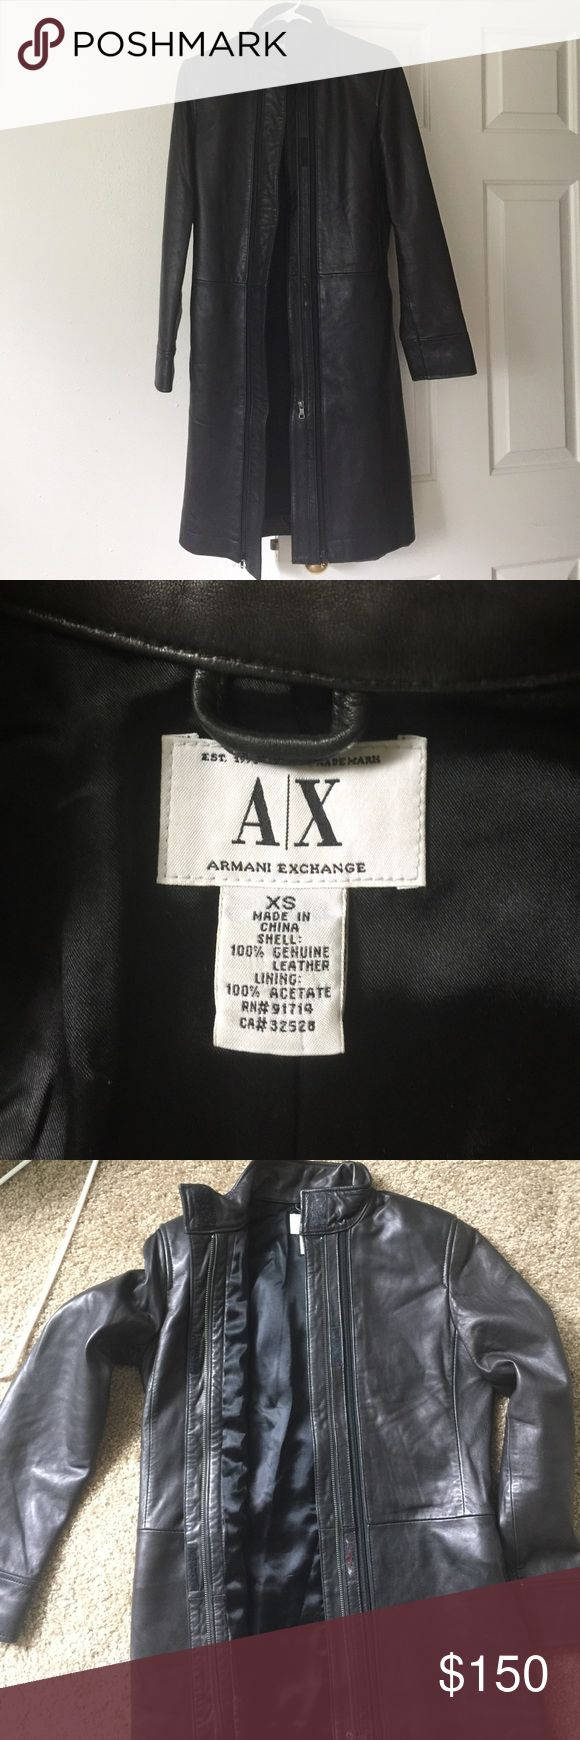 Armani exchange women leather coat Good condition. There is a tiny white spot on the left sleeve. I believe you could clean it off. Knee length. My height is 5'3. Armani Exchange Jackets & Coats